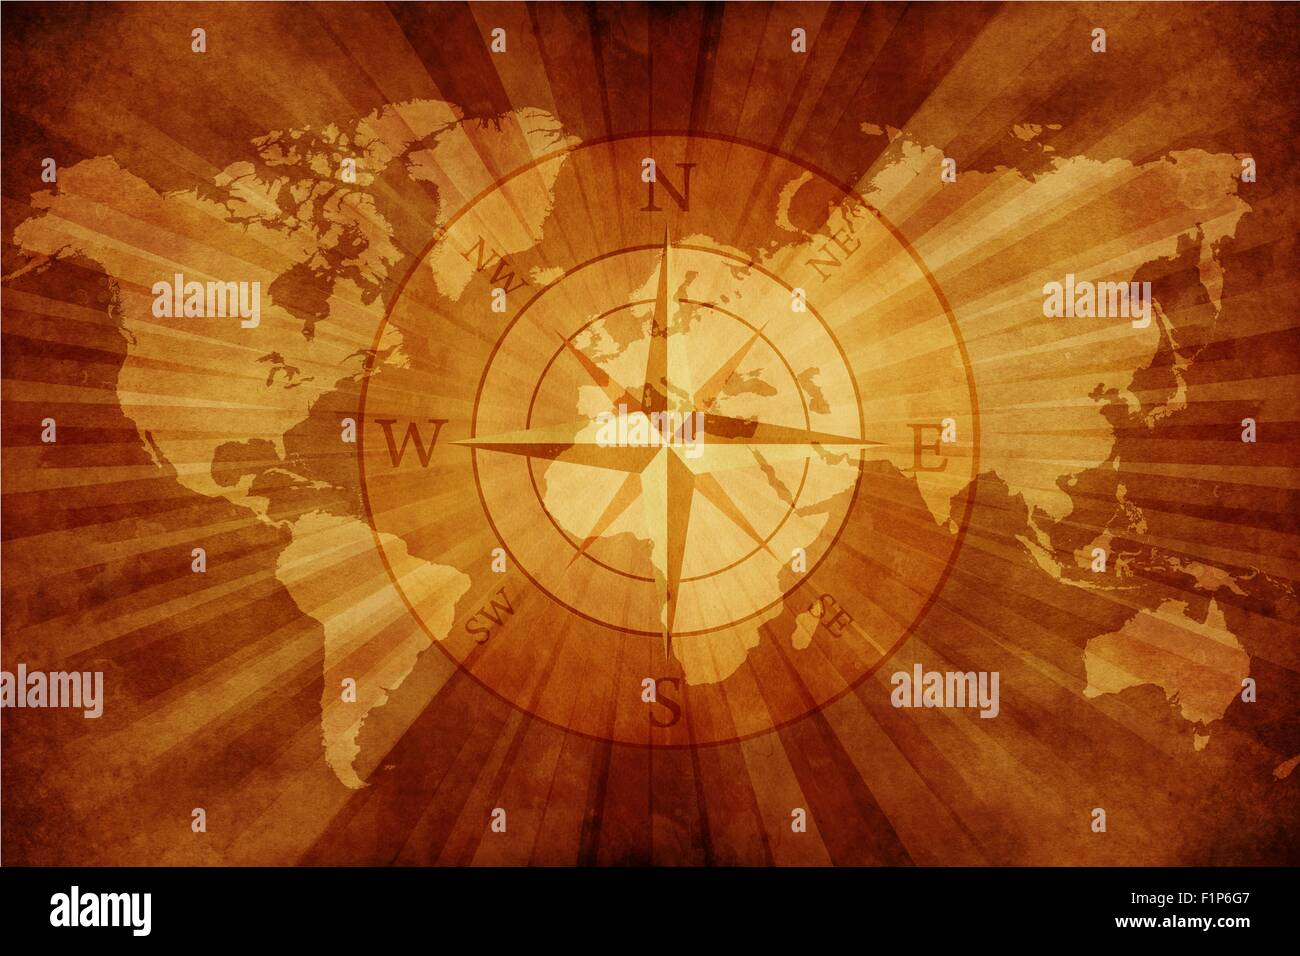 Old World Map with Compass Rose. Grungy Old Paper World Map with ...